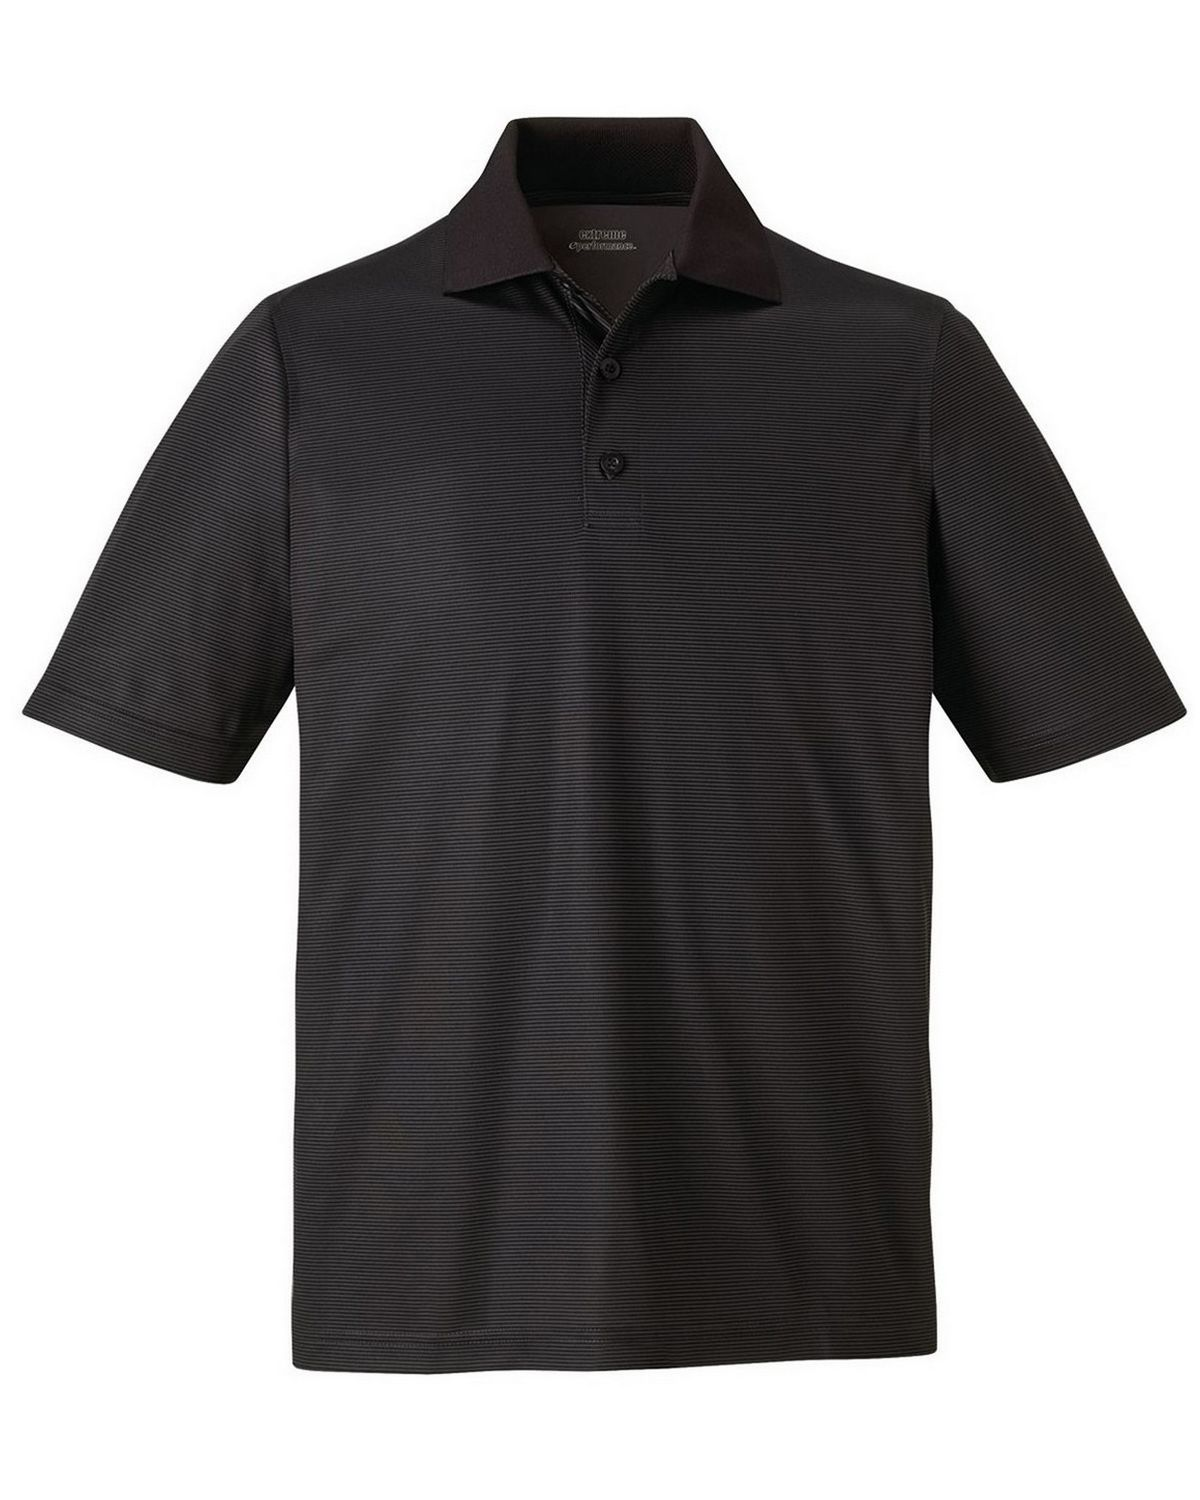 Extreme 85115 Launch Men's Snag Protection Striped Polo